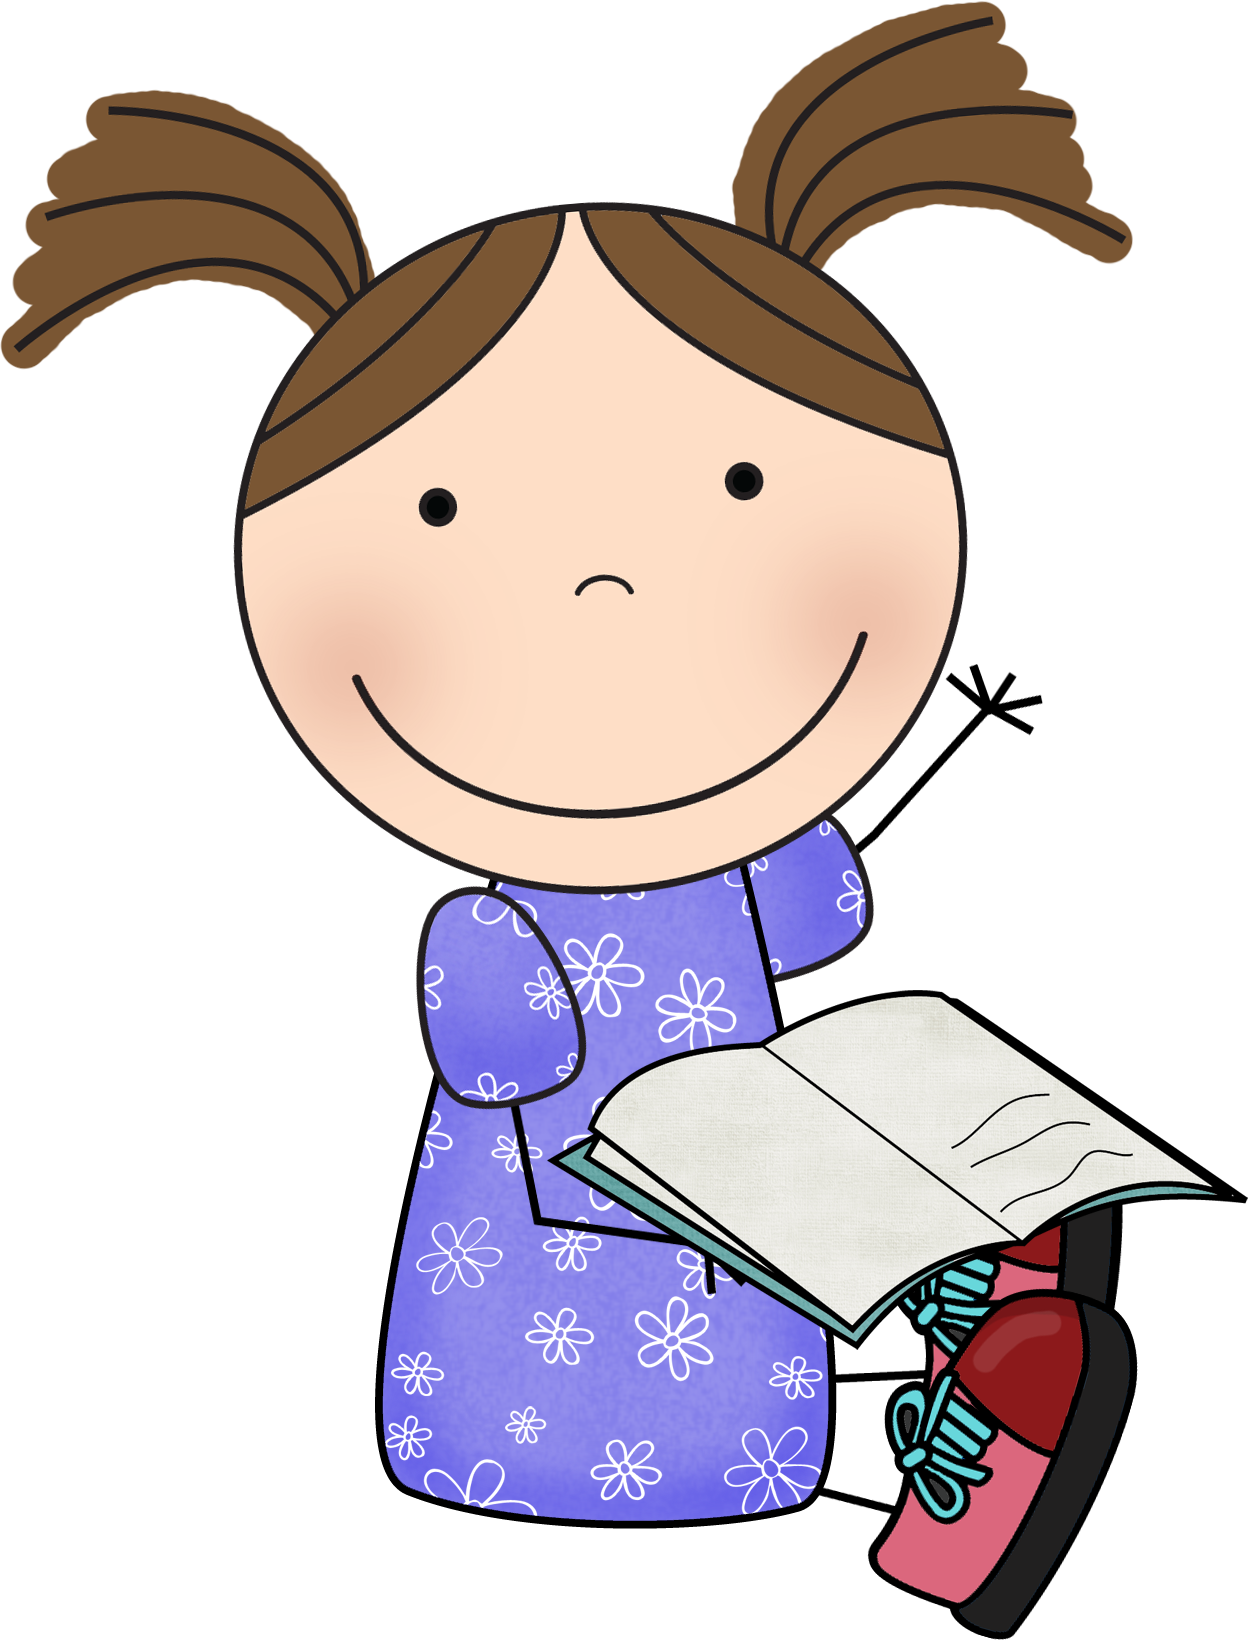 Organized clipart library rule. Reading susie png behavior